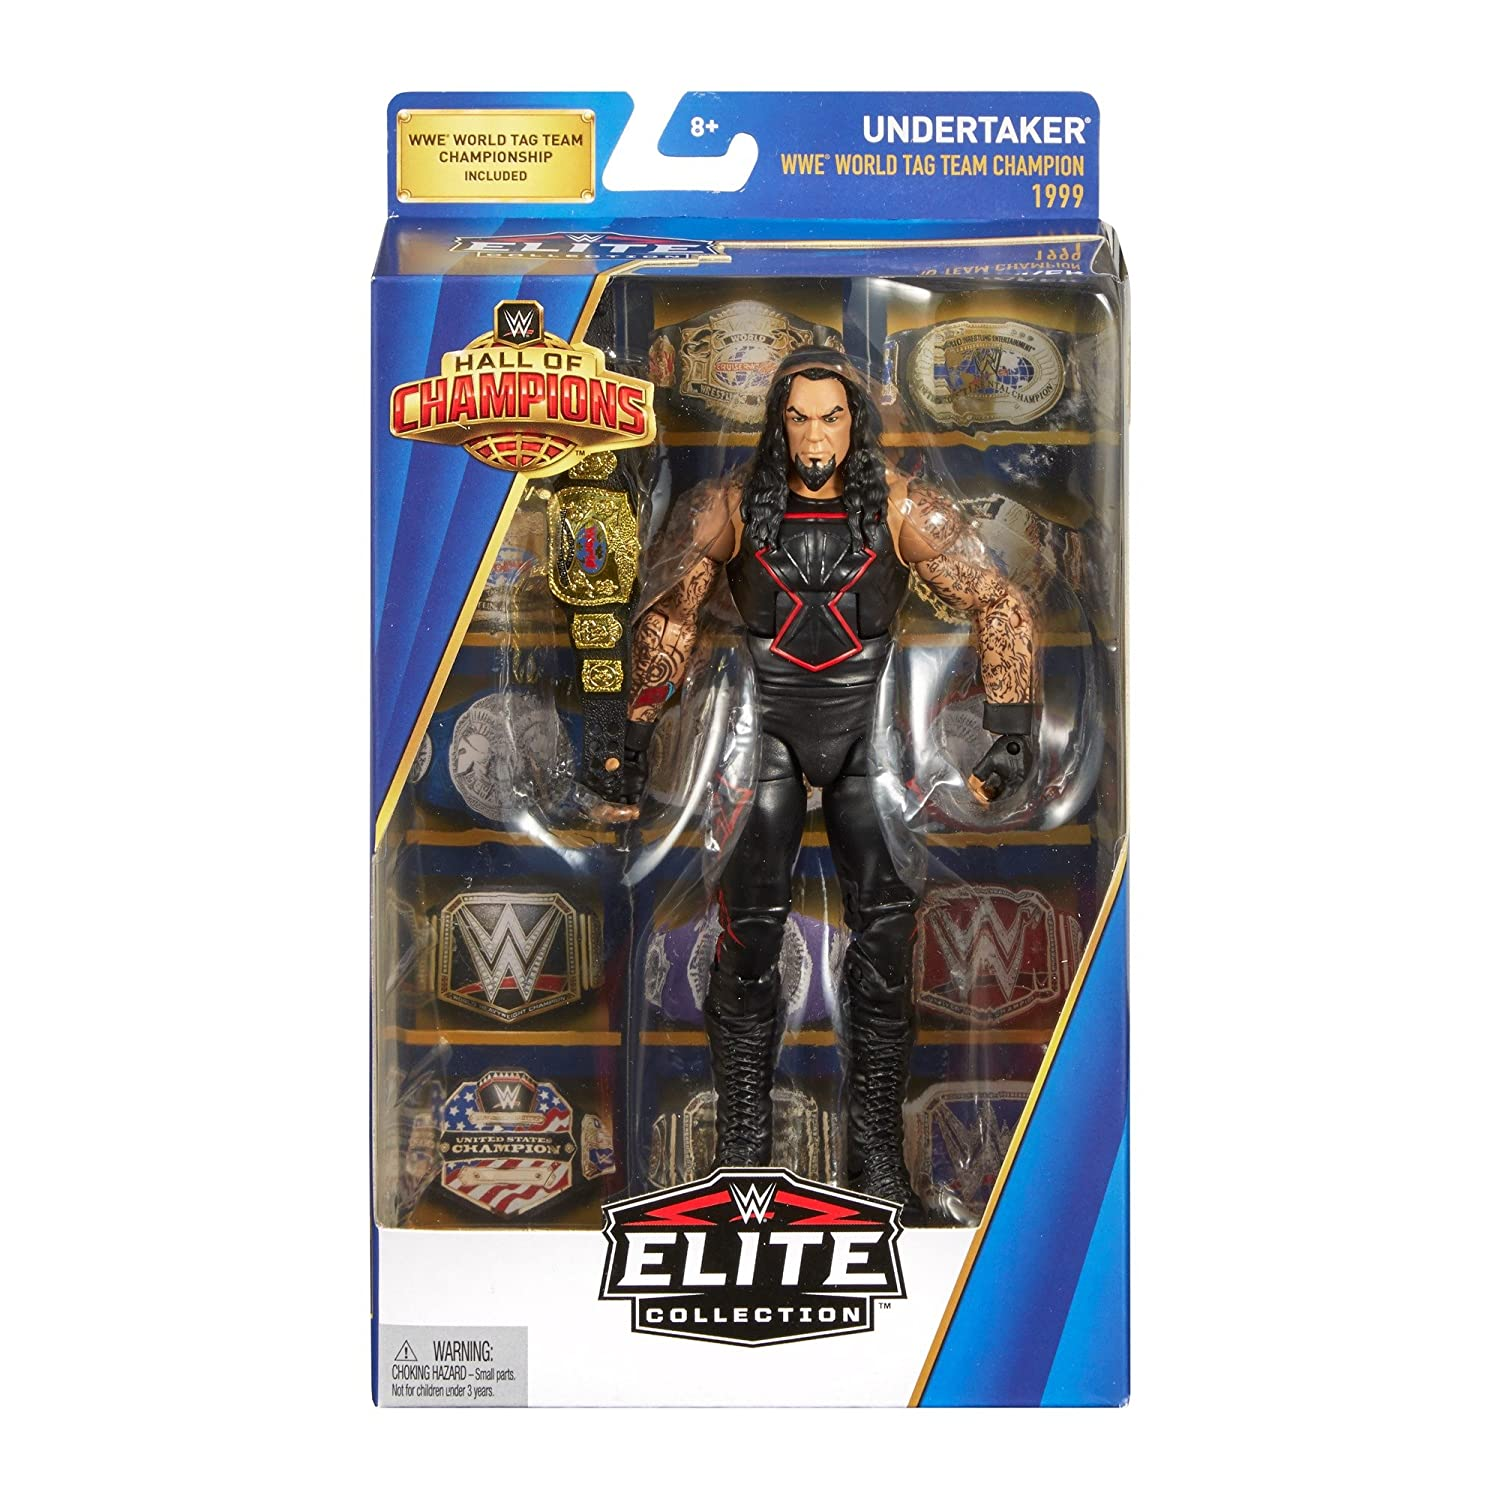 Wrestling FNW30 WWE Elite Collection Hall of Champions Exclusive Undertaker 6 inch Action Figure